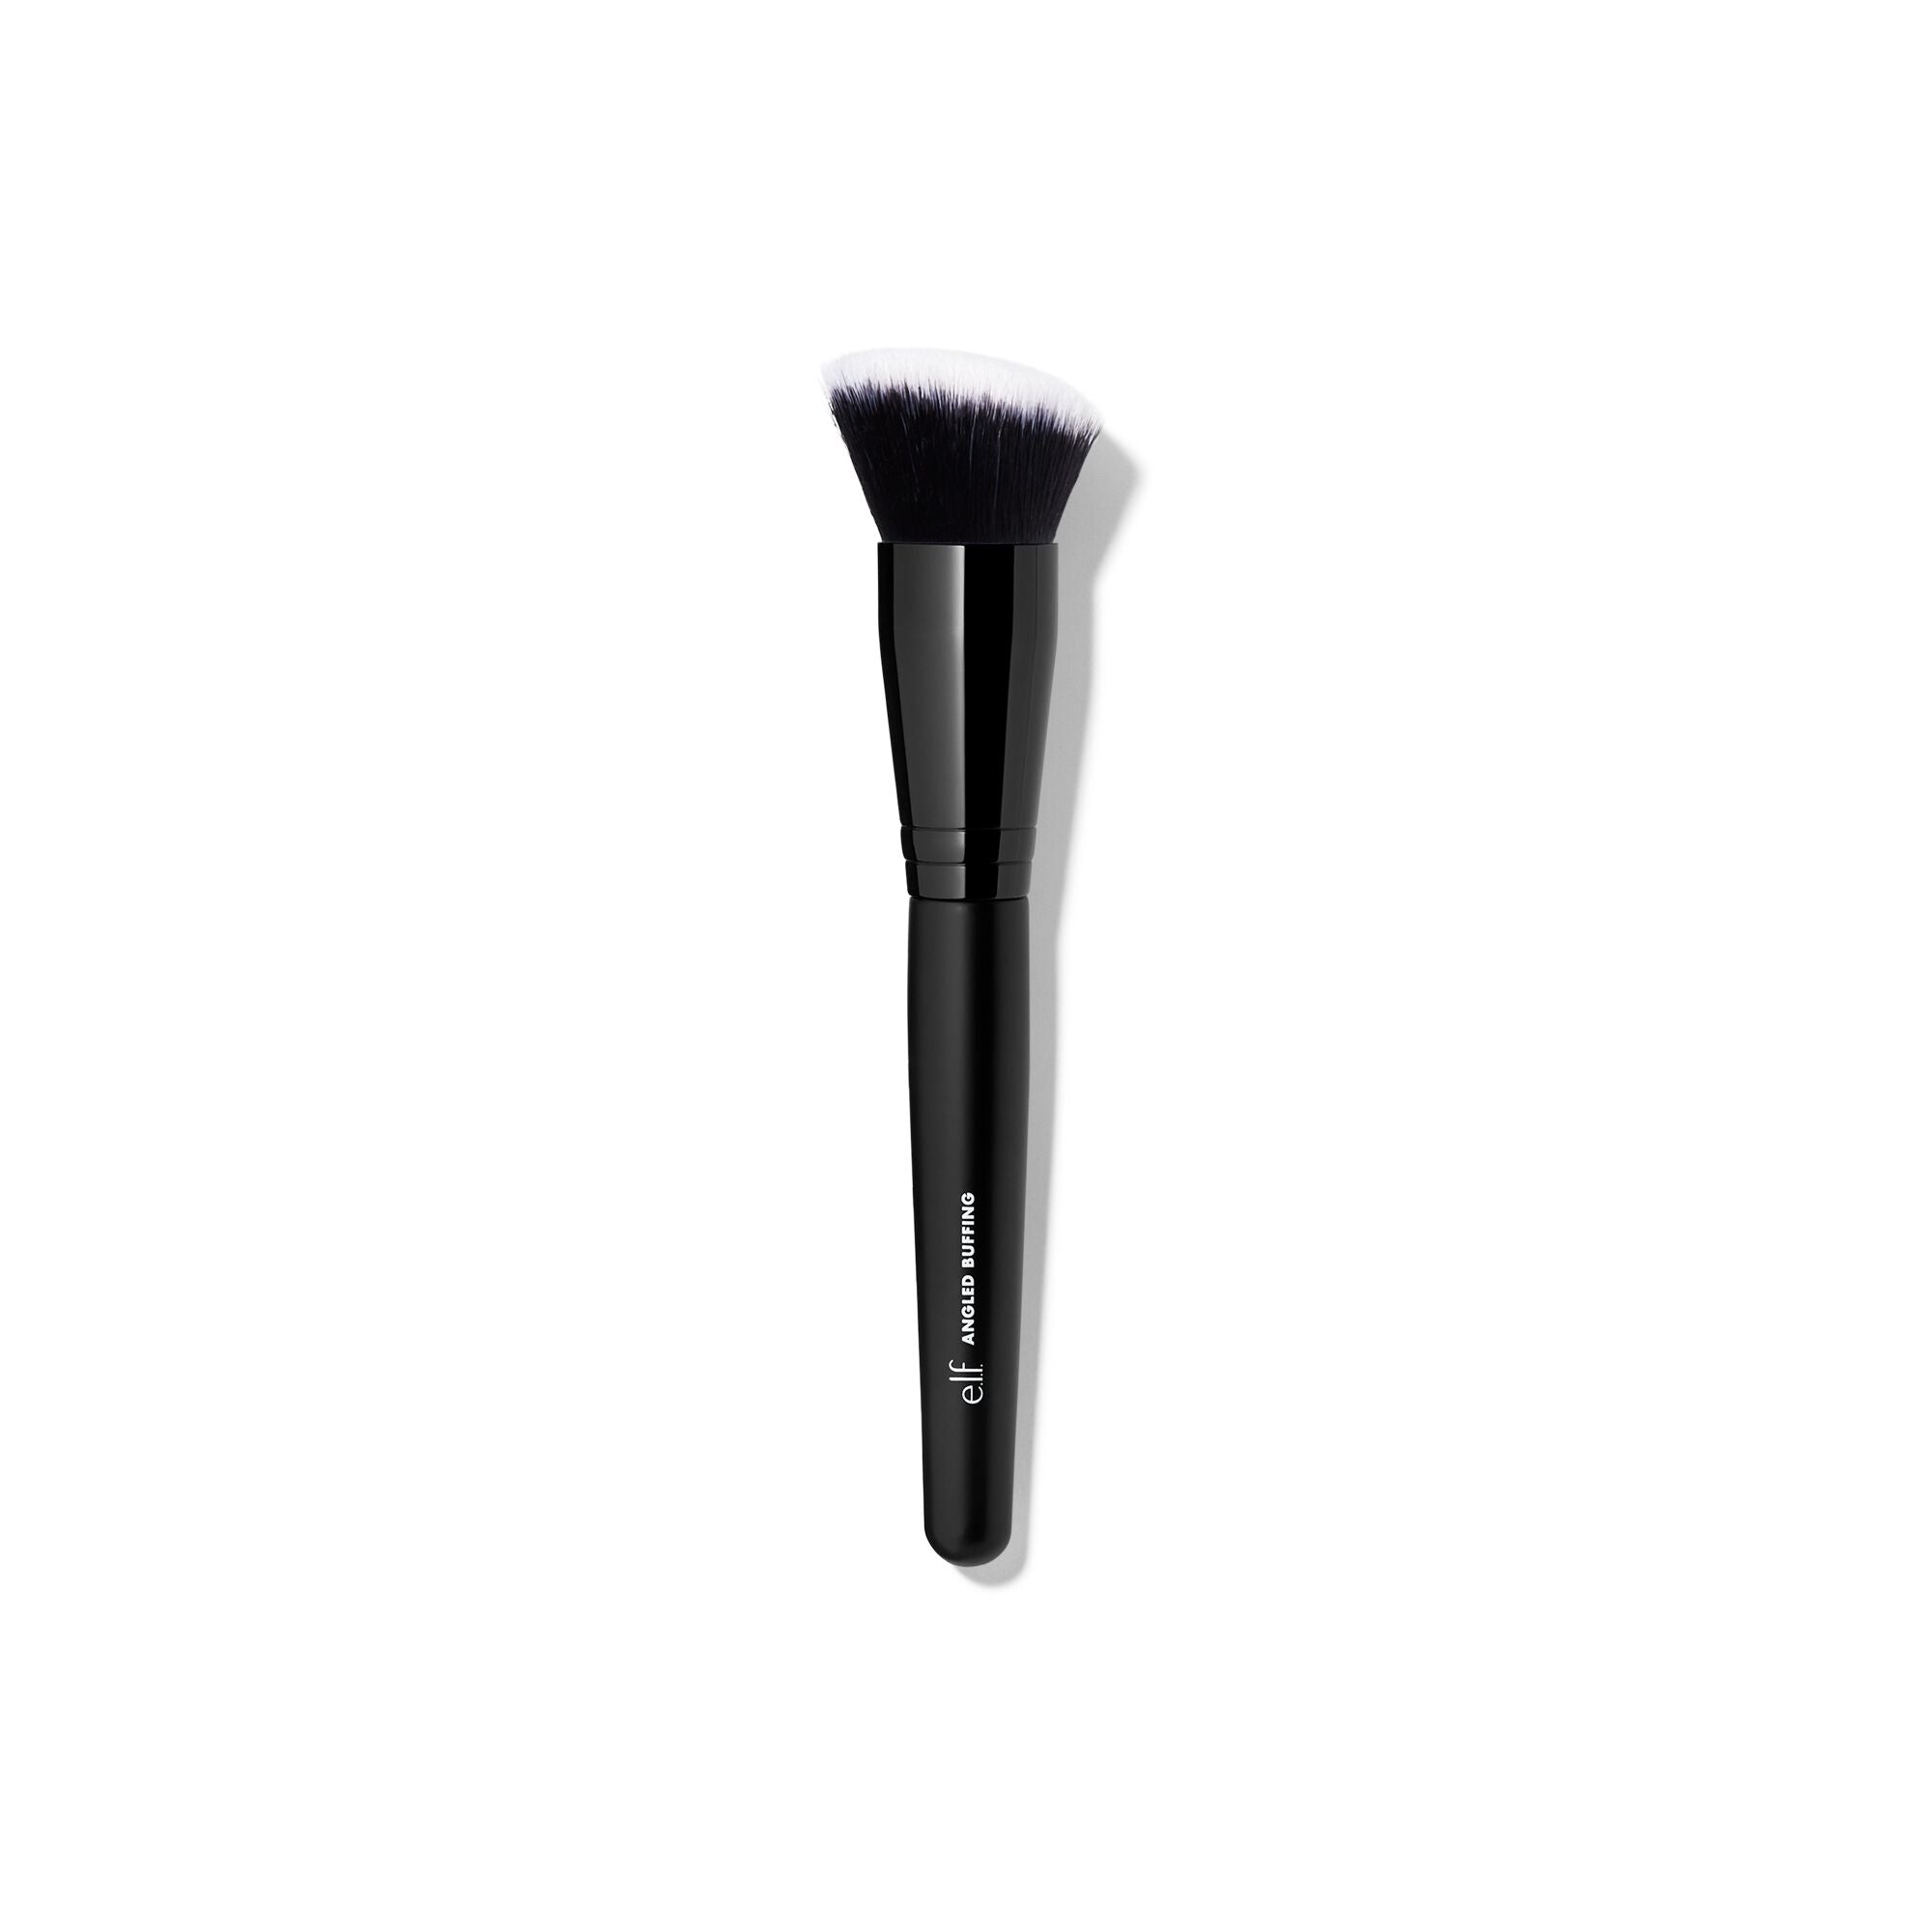 elf Studio Angled Buffing Brush